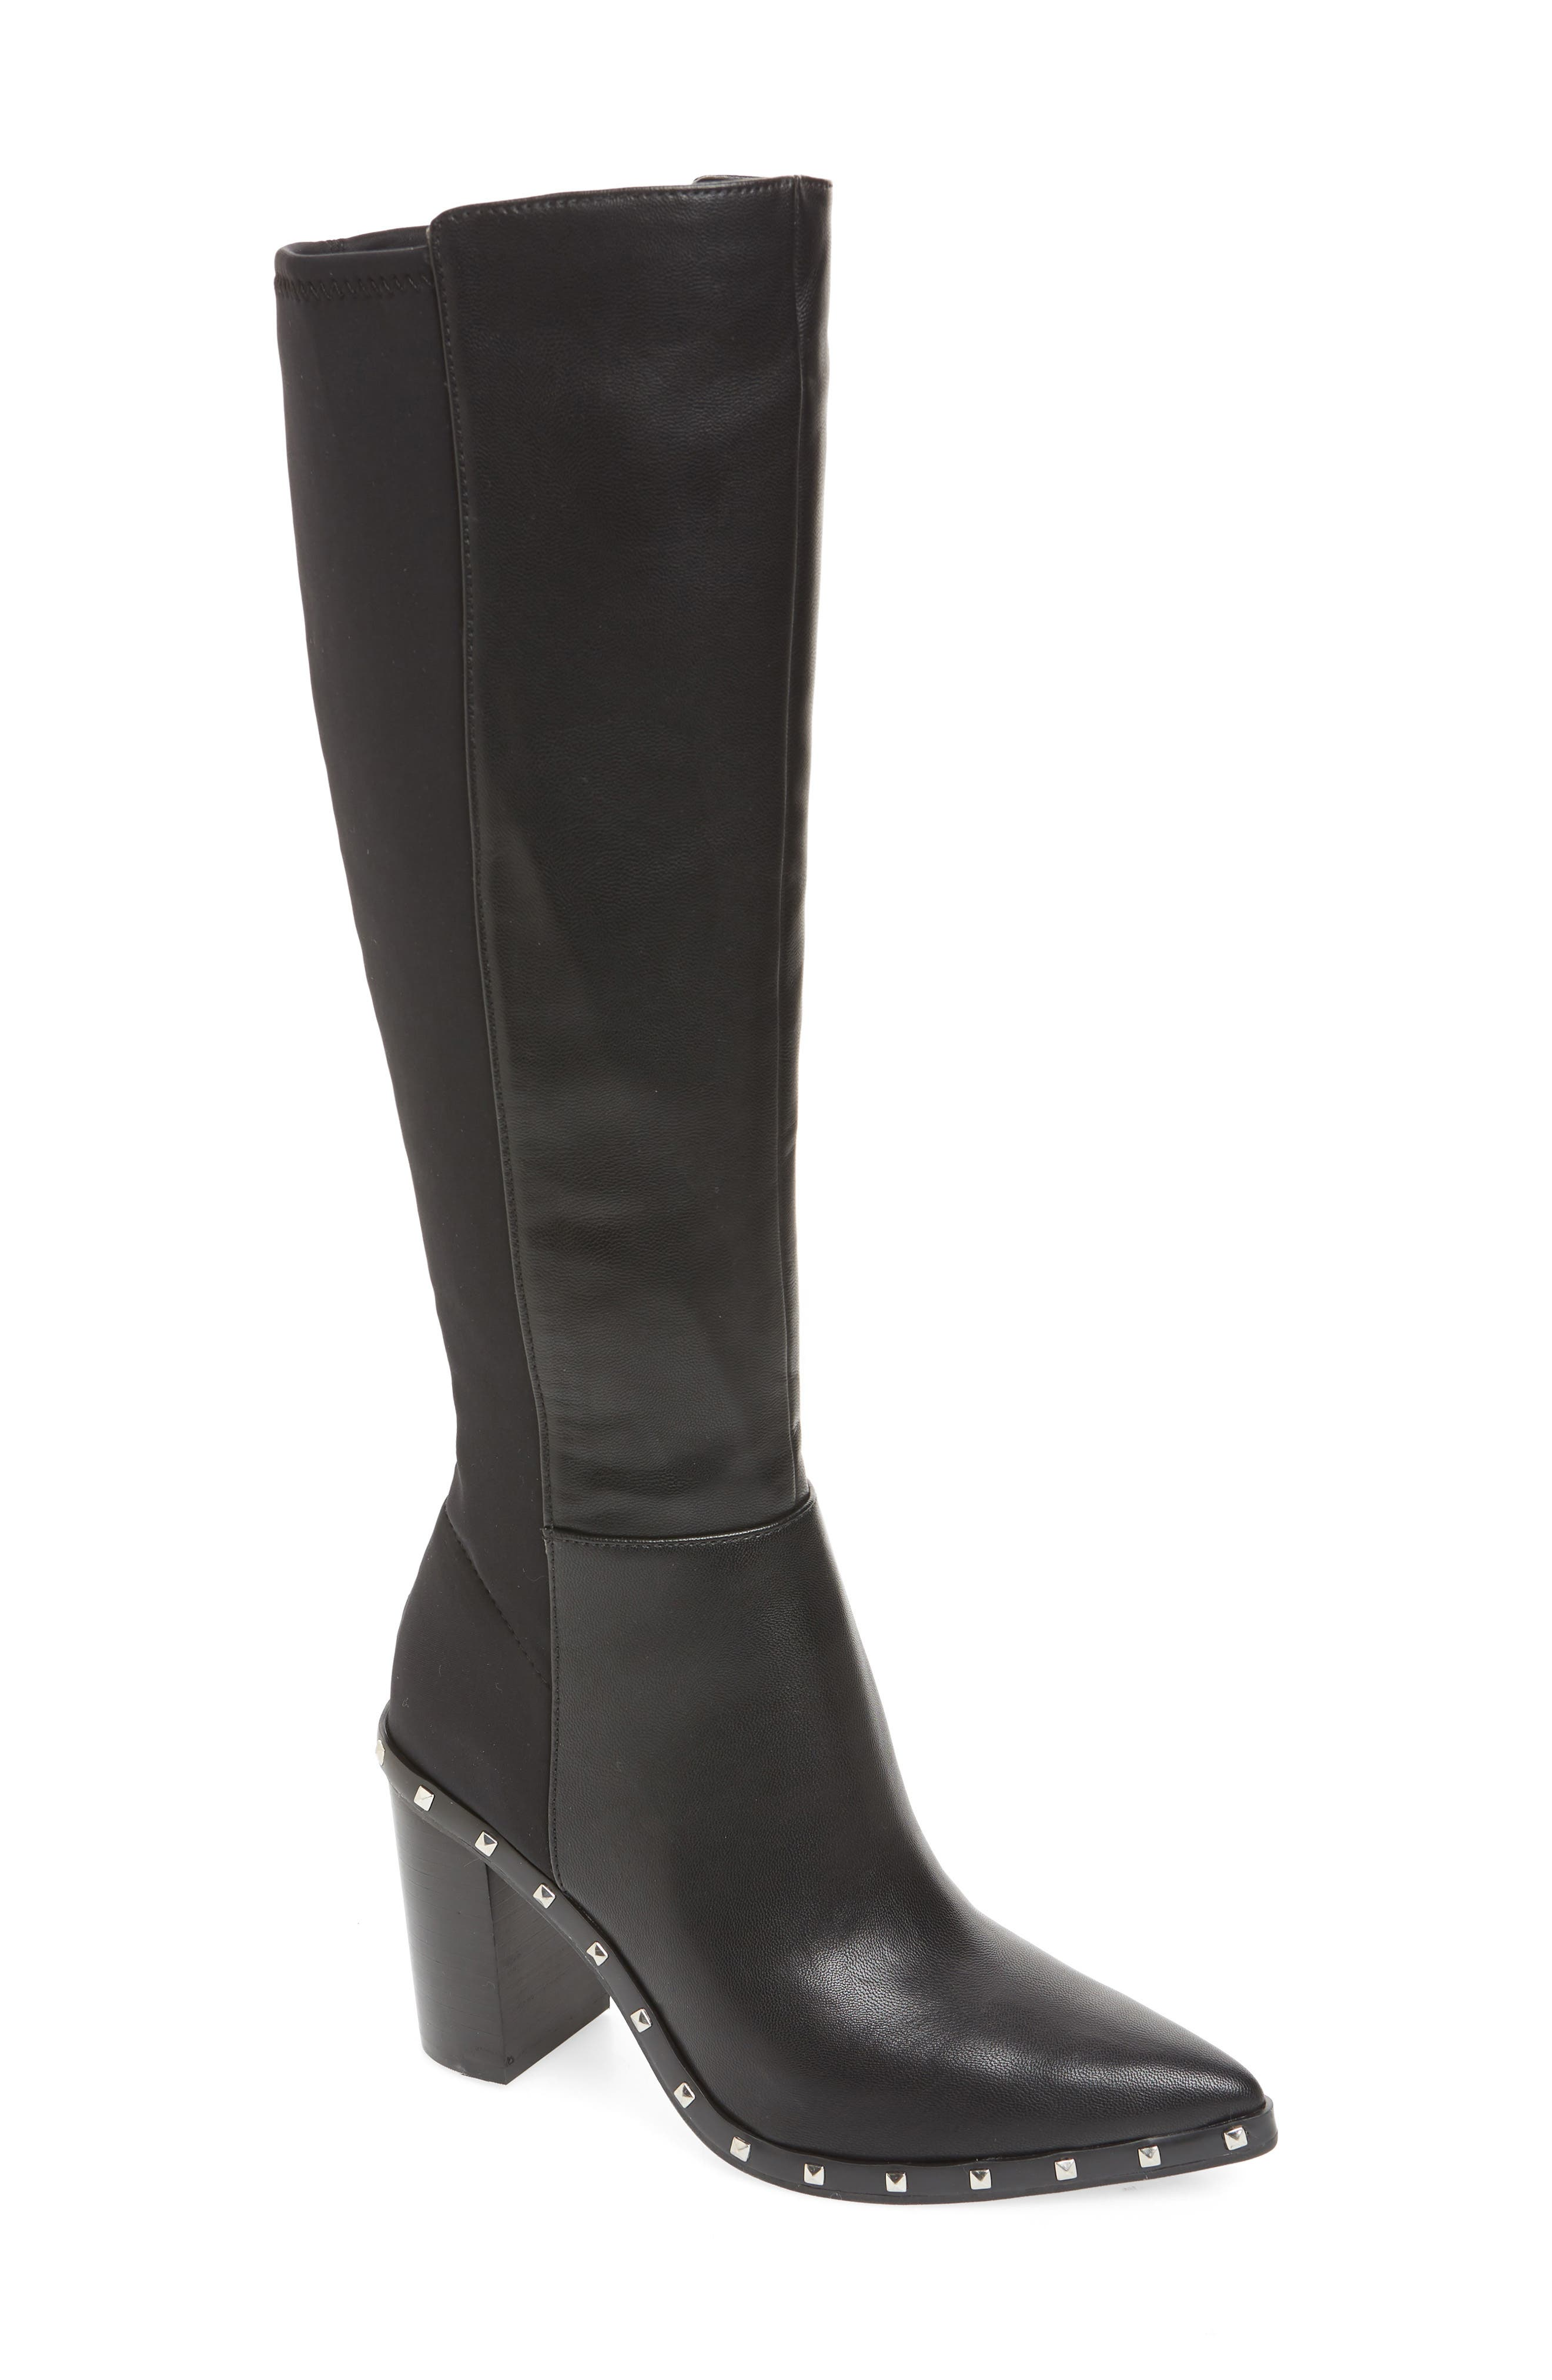 CHARLES BY CHARLES DAVID Studded Knee High Stretch Boot, Main, color, BLACK FAUX NUBUCK LEATHER